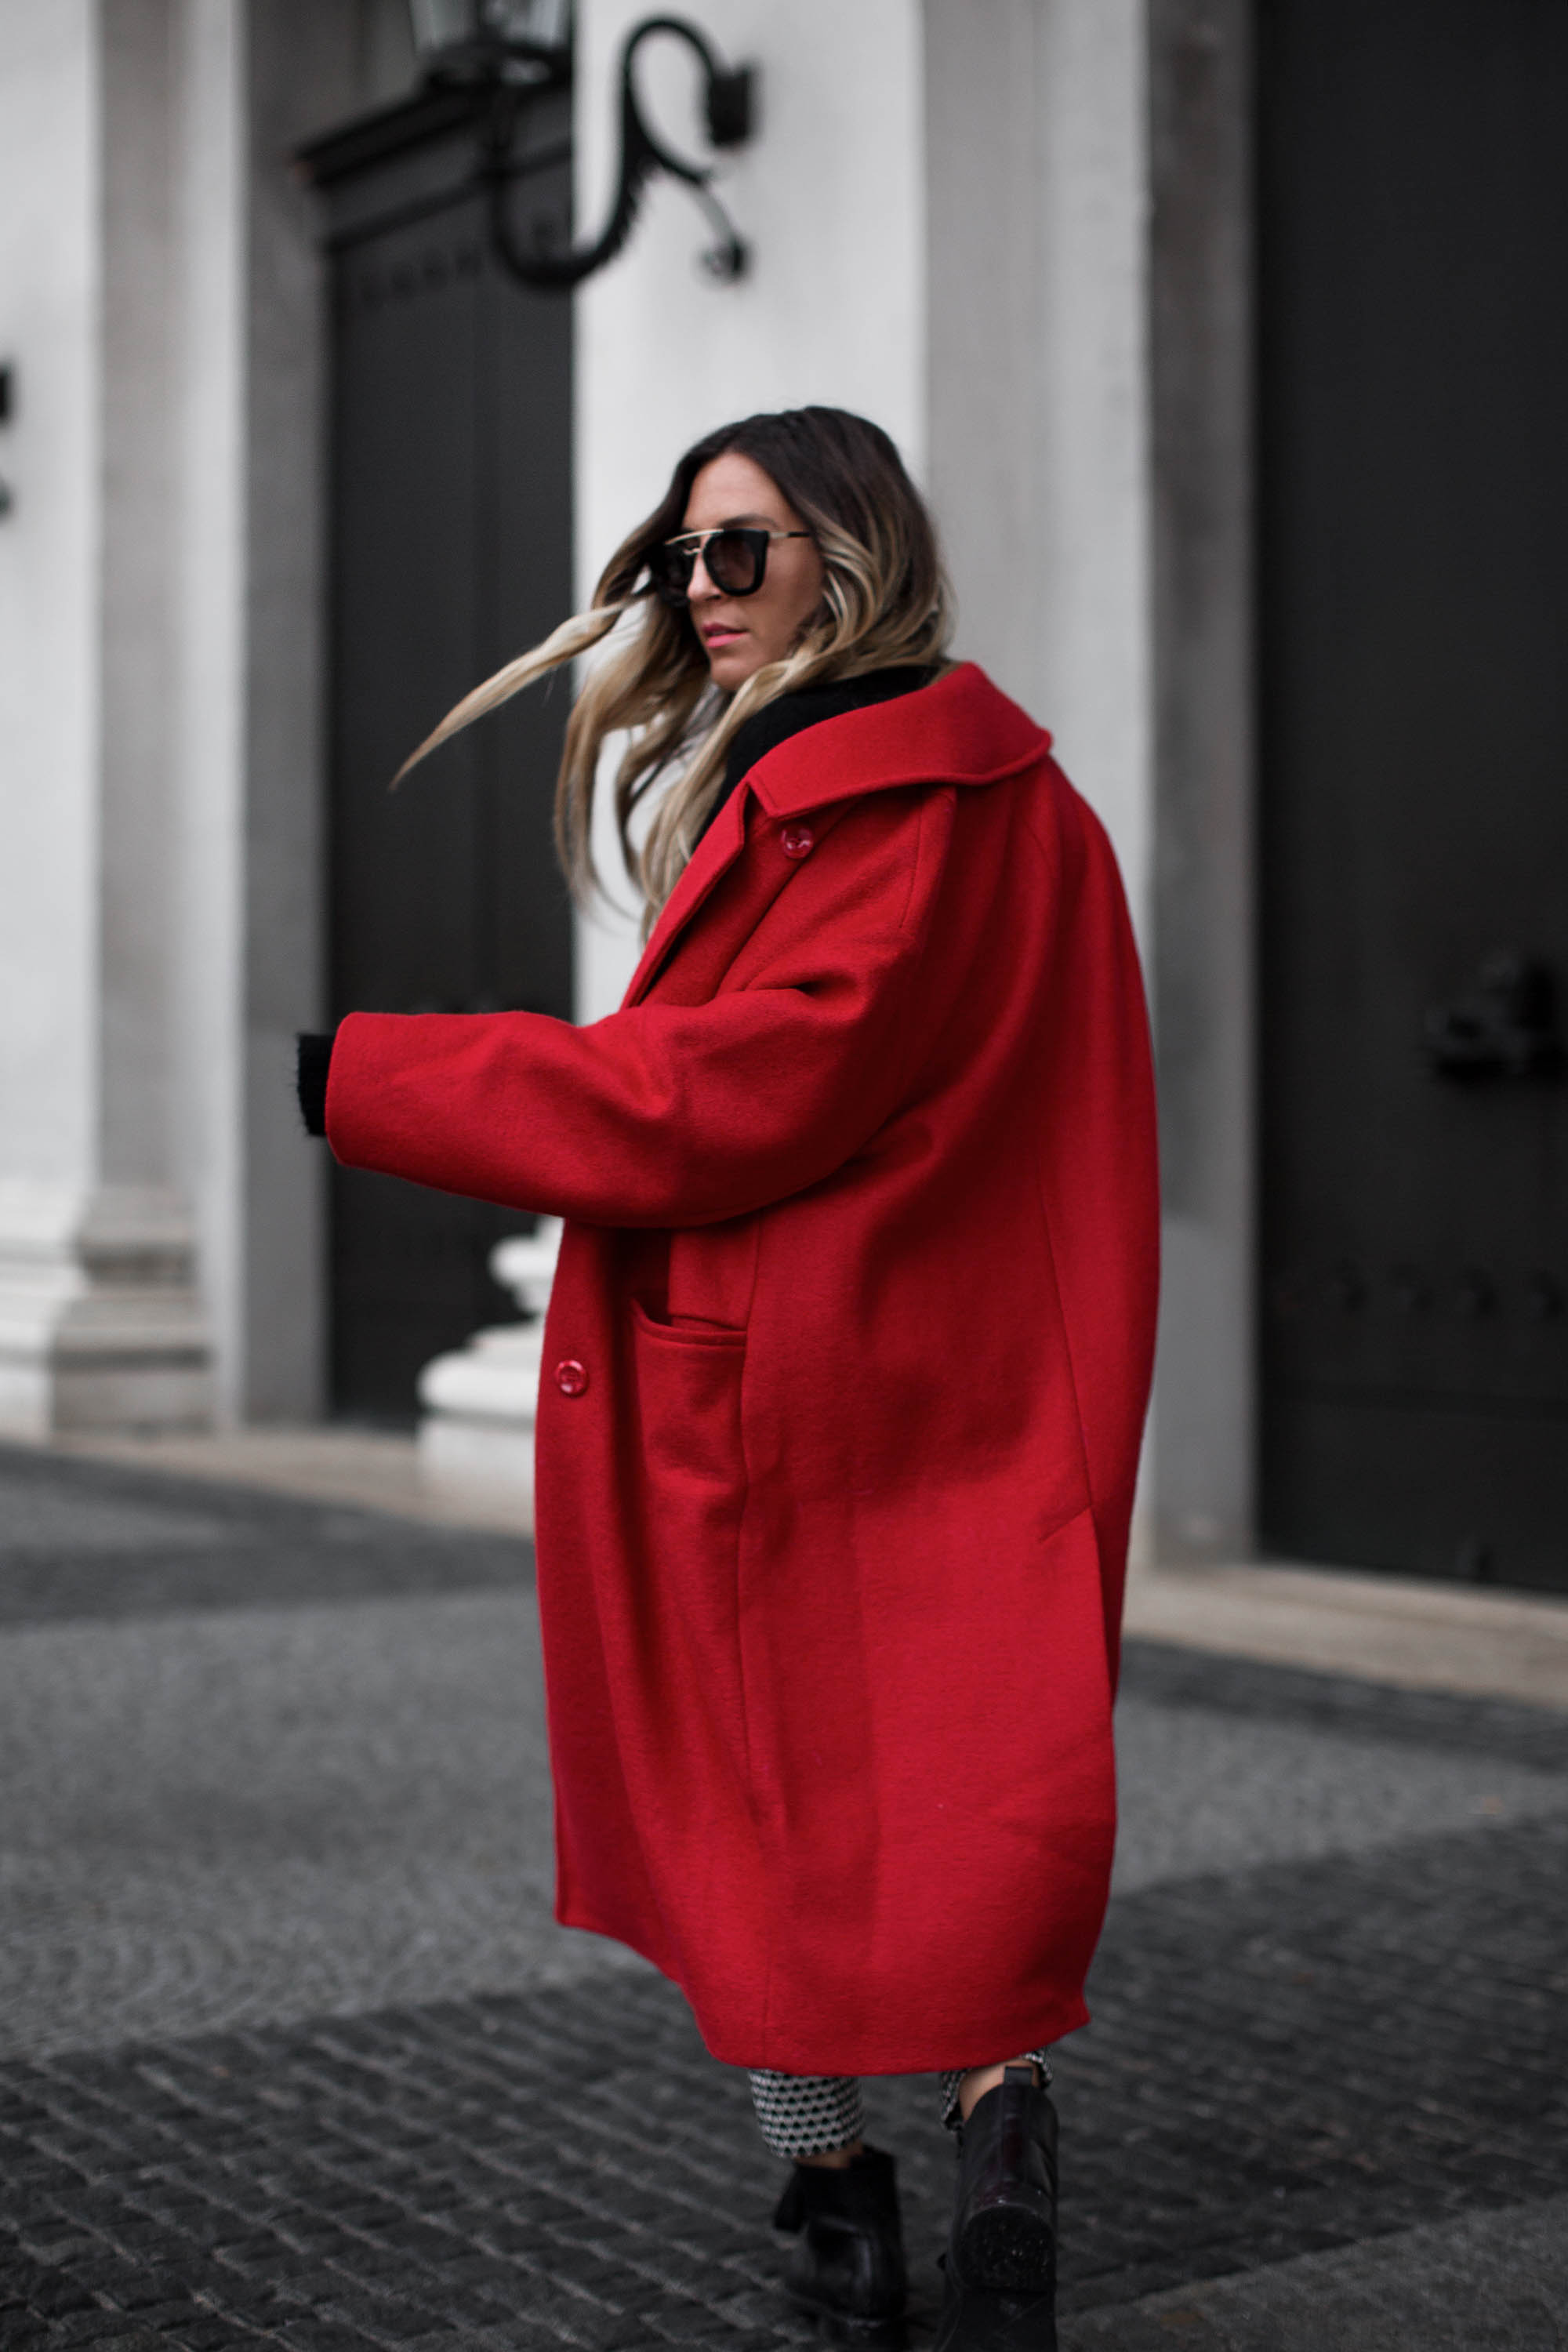 black-palms-hm-roter-mantel-boots-edited-streestyle-fashionblog-6